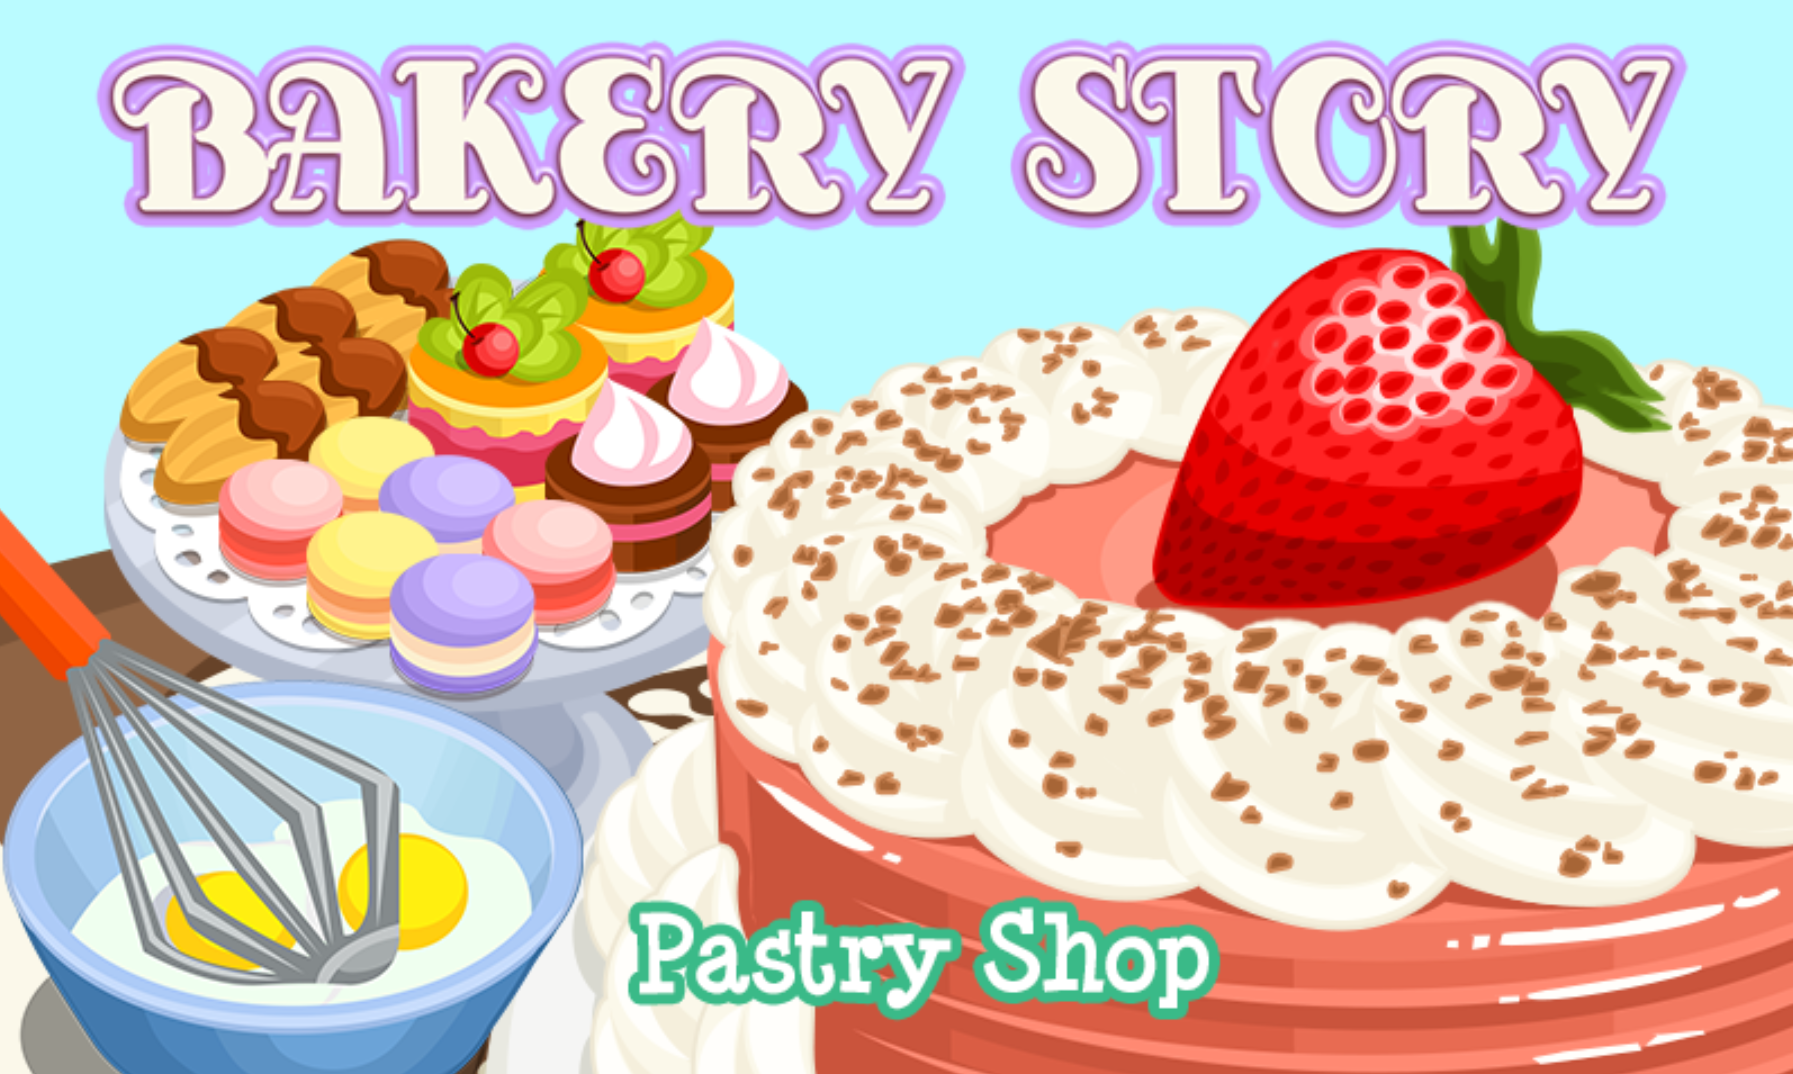 Oven For Bakery Shop Bakery Story 43 Pastry Shop